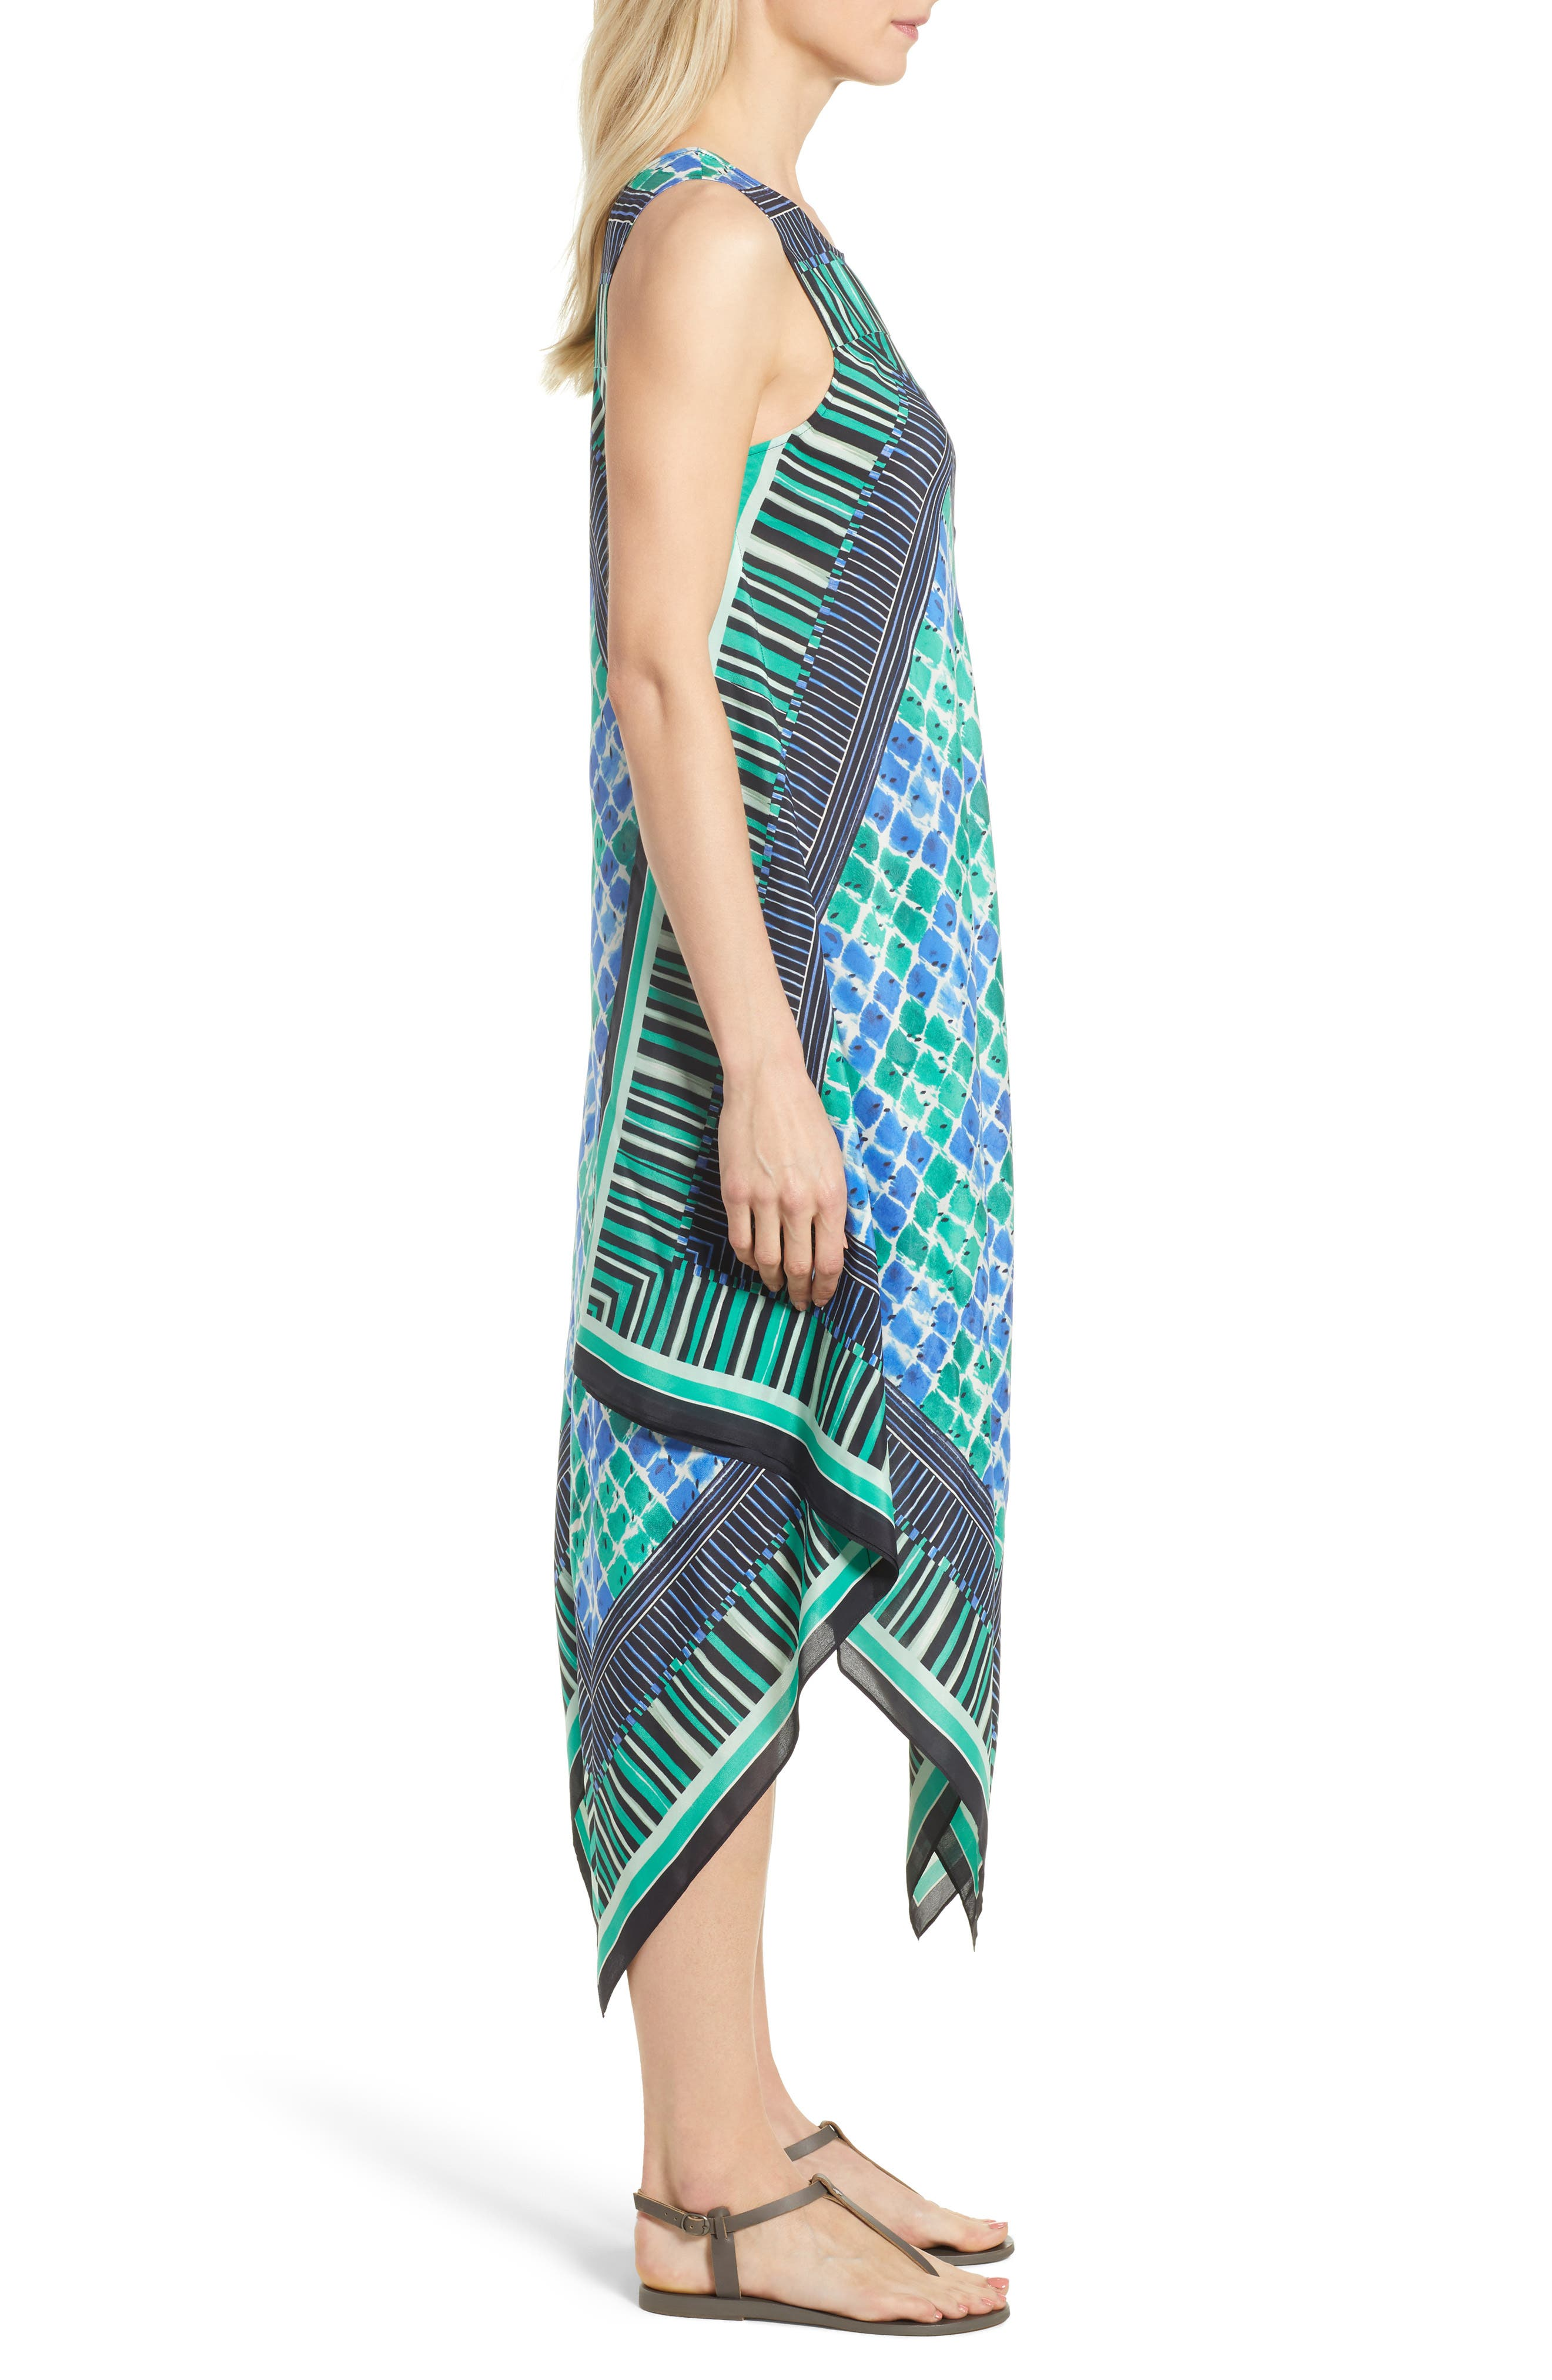 DJ VU Print Tank Dress,                             Alternate thumbnail 3, color,                             Multi